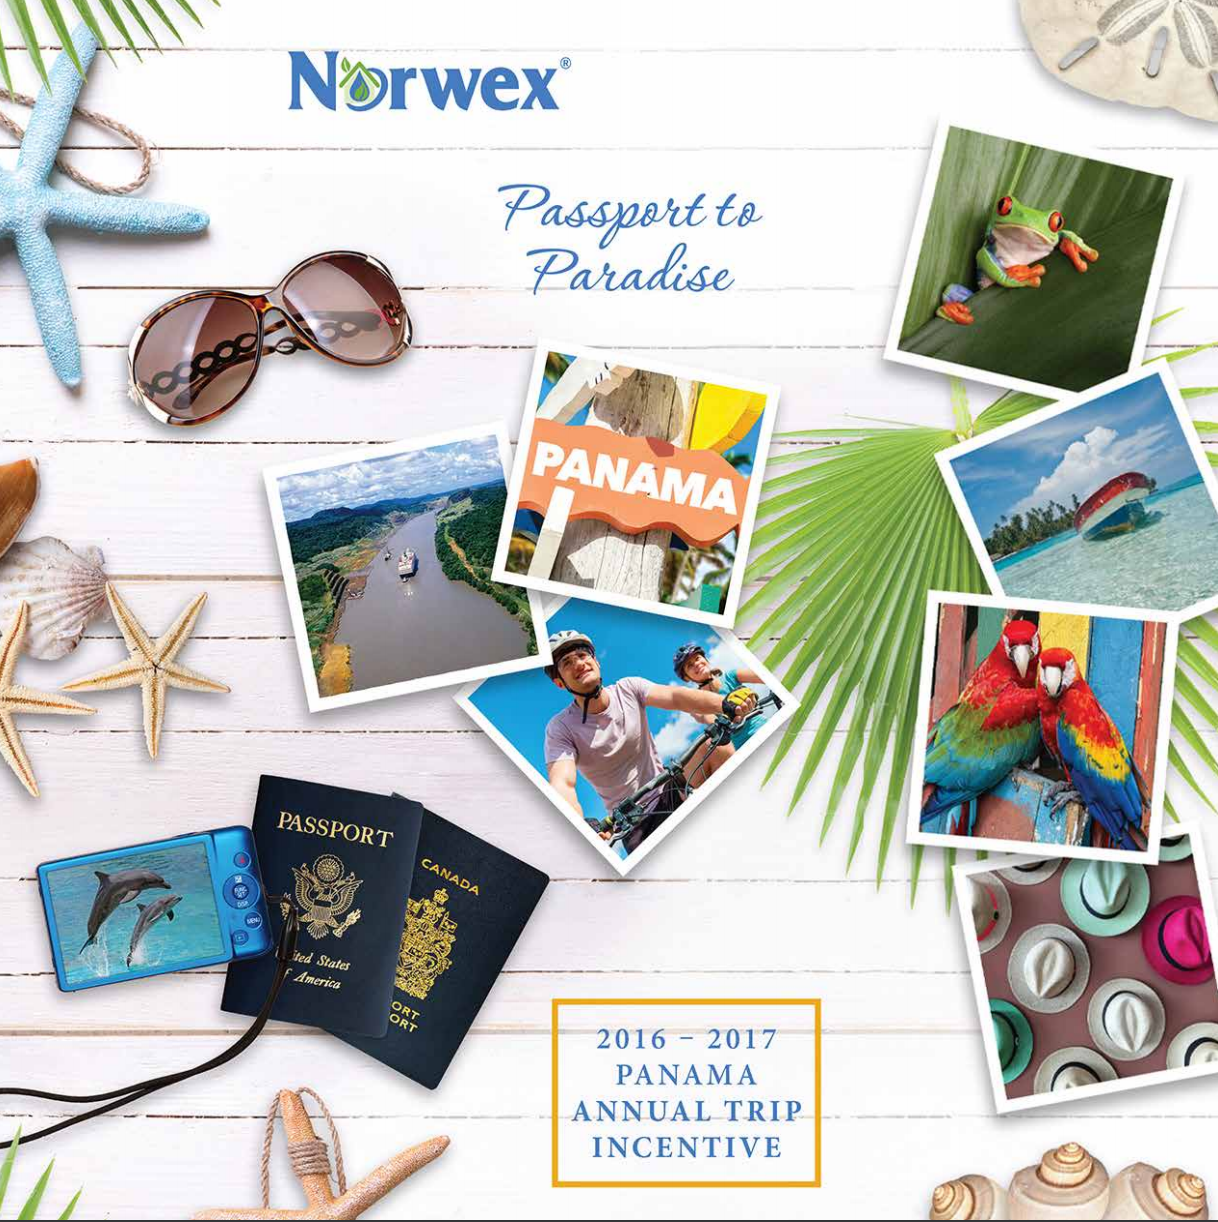 Norwex consultant benefits….must enjoy free drinks and food!